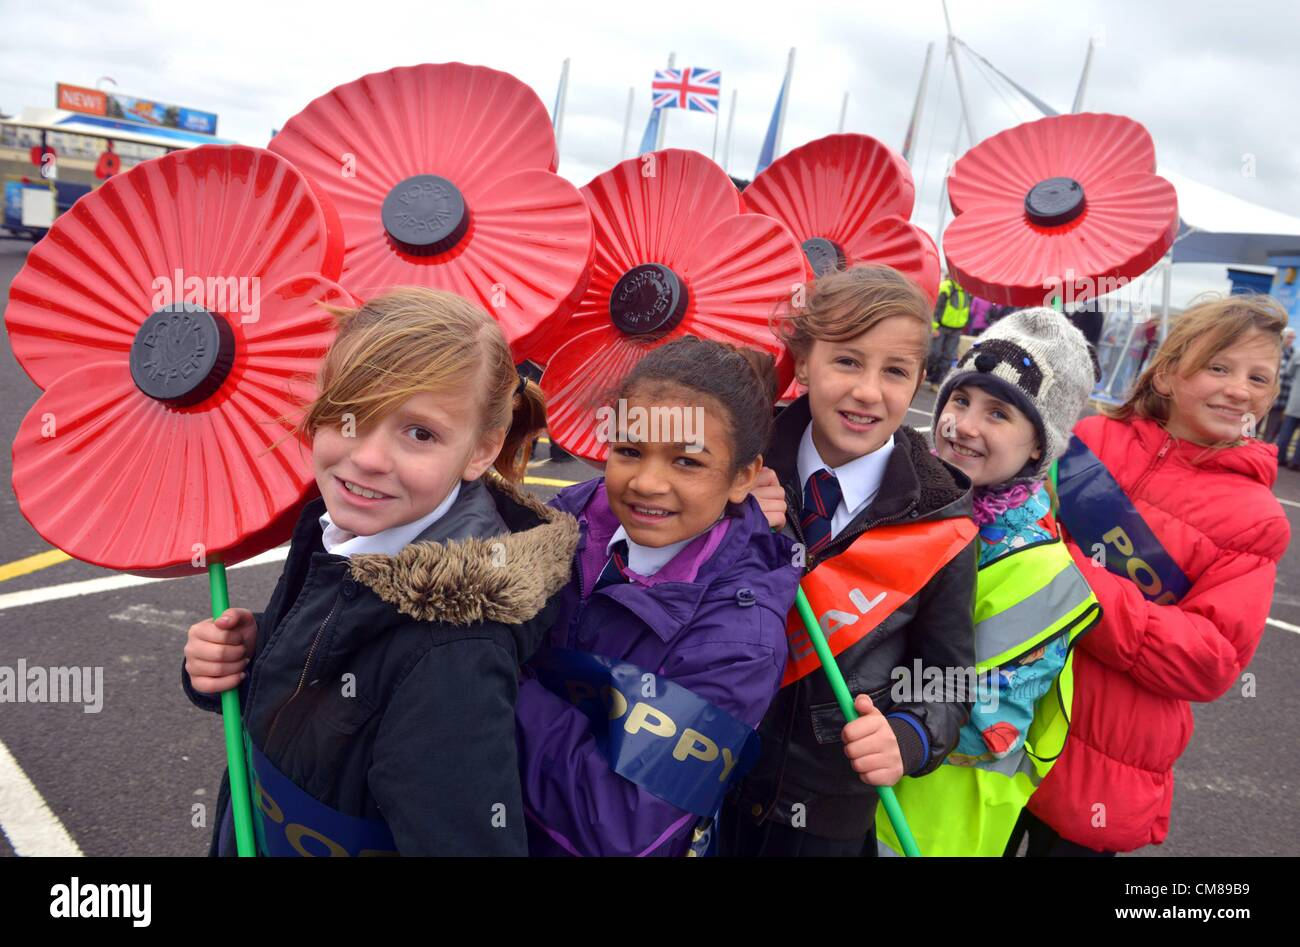 School children holding giant poppies as part of Remembrance Royal British Legion appeal - Stock Image